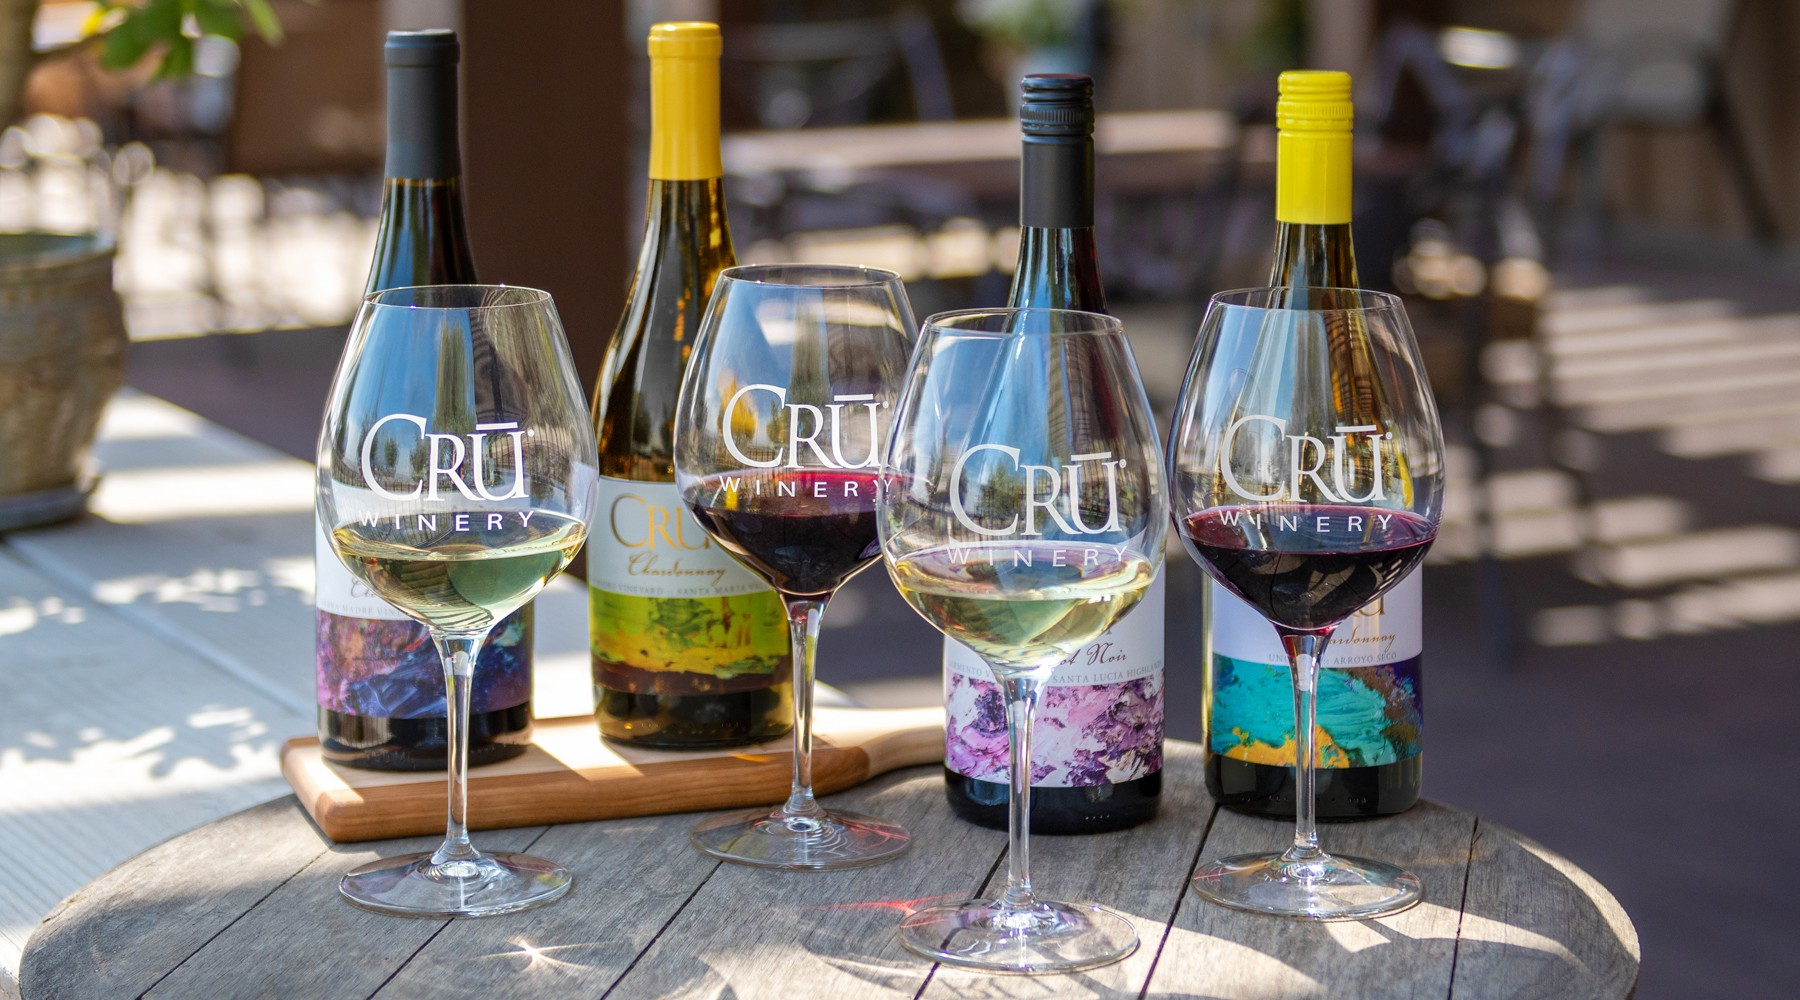 Tasting at CRU Winery